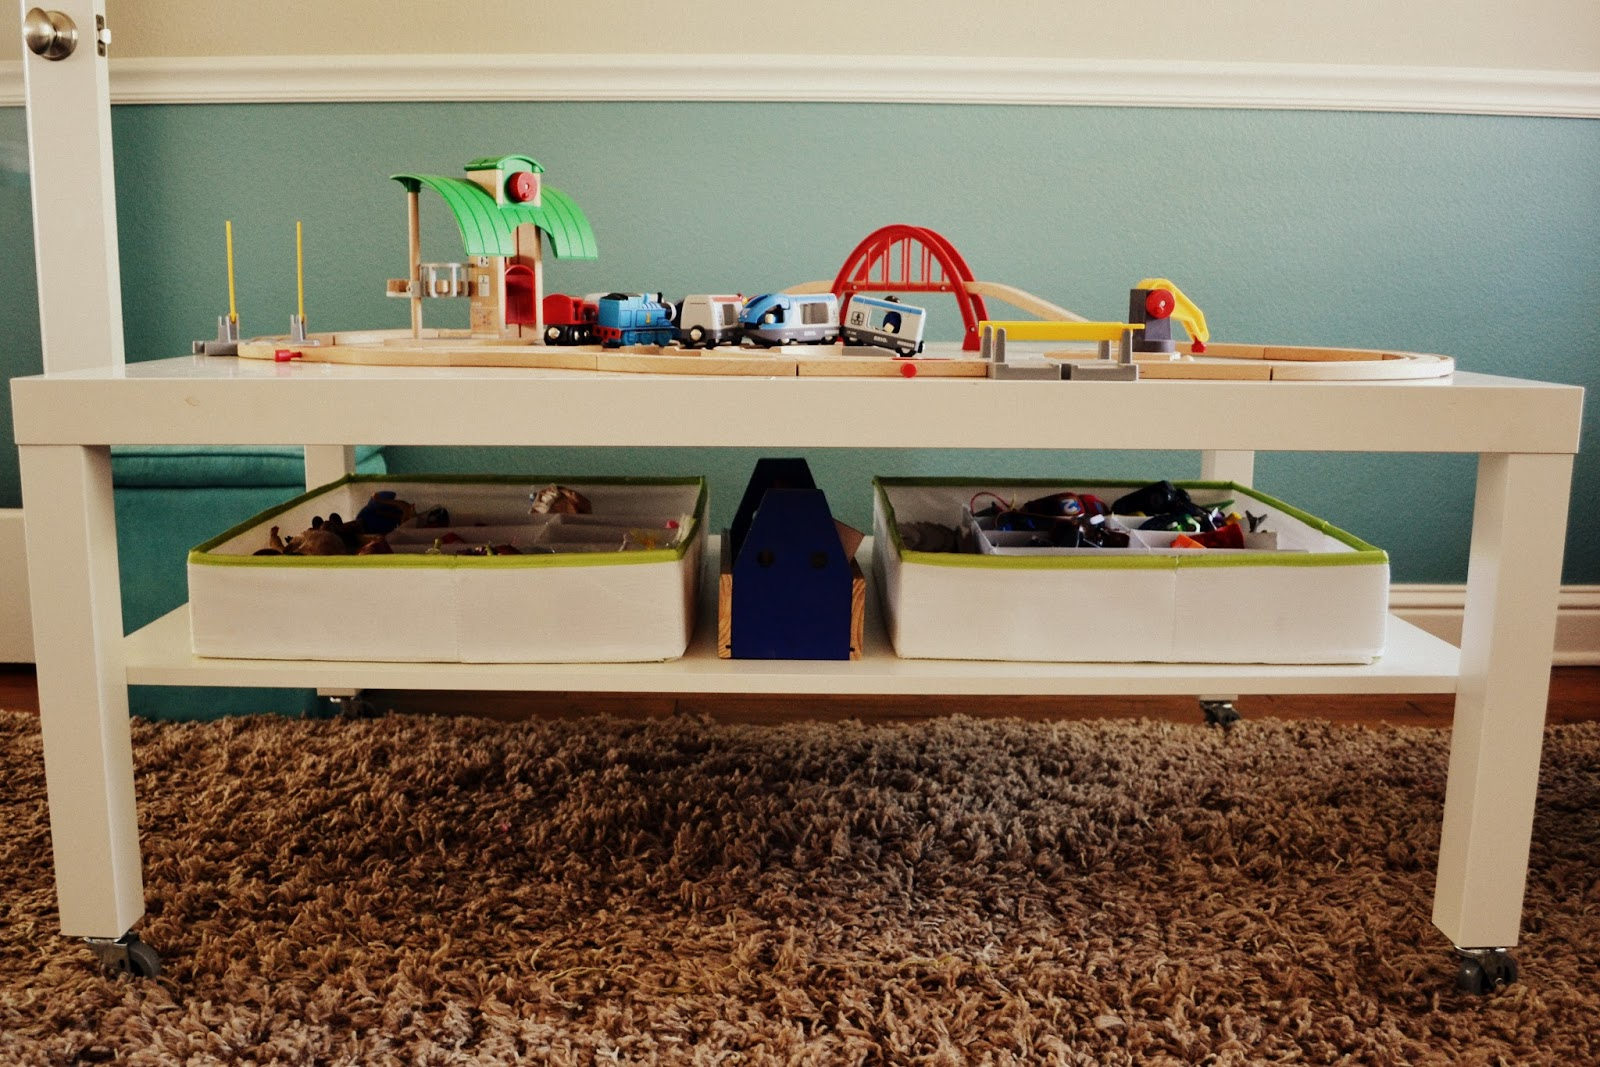 Plan to Happy Toy Storage for the Playroom Means to Reduce Toy